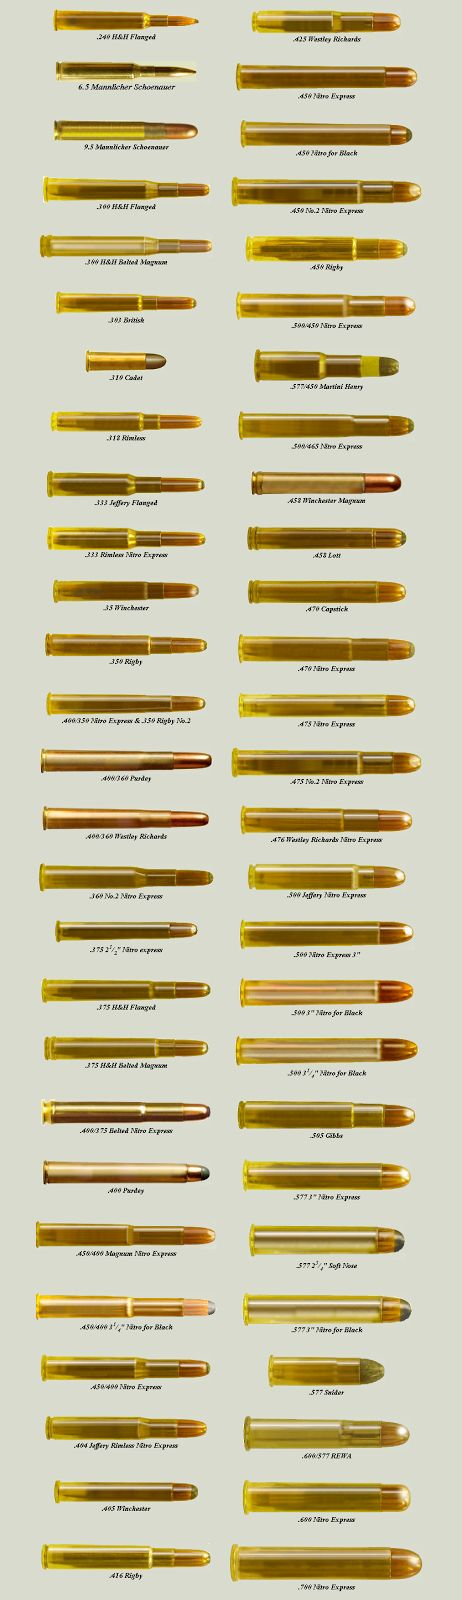 Comprehensive Ammunition Chart  last part of board has more prep info  http://www.pinterest.com/ms5739/tipsprintscharts/